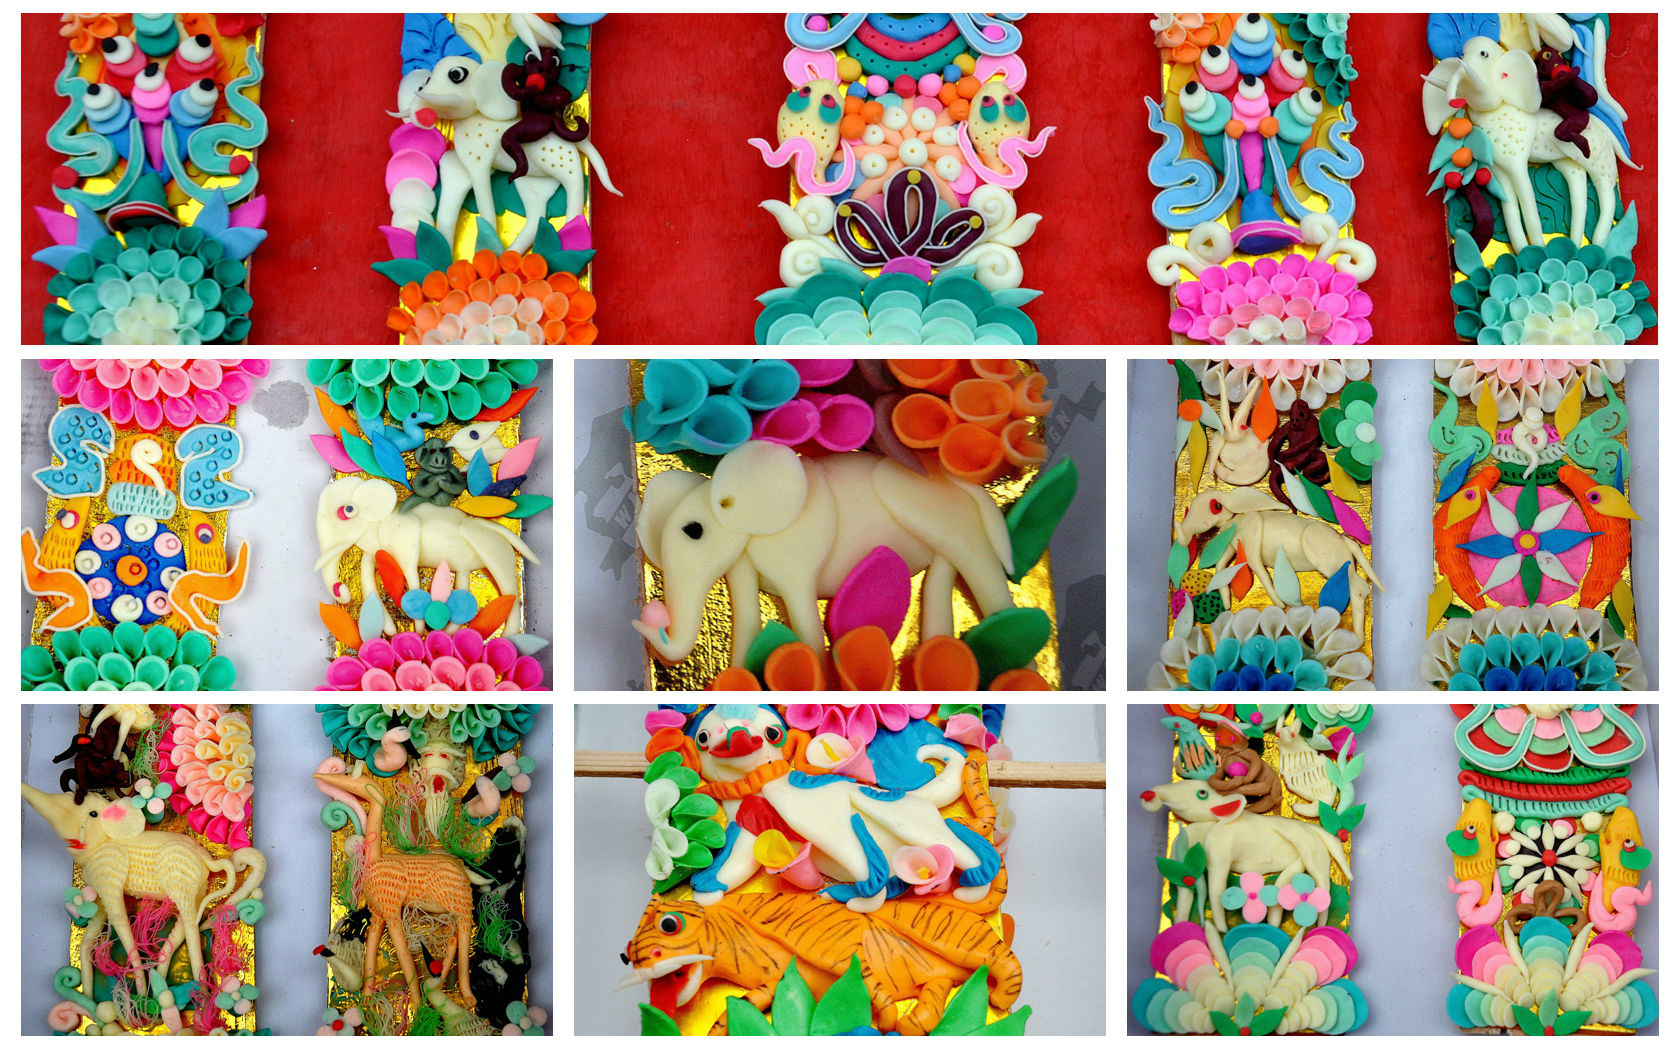 Butter Sculpture Festival Celebrated in Jampaling Monastery, Chamdo